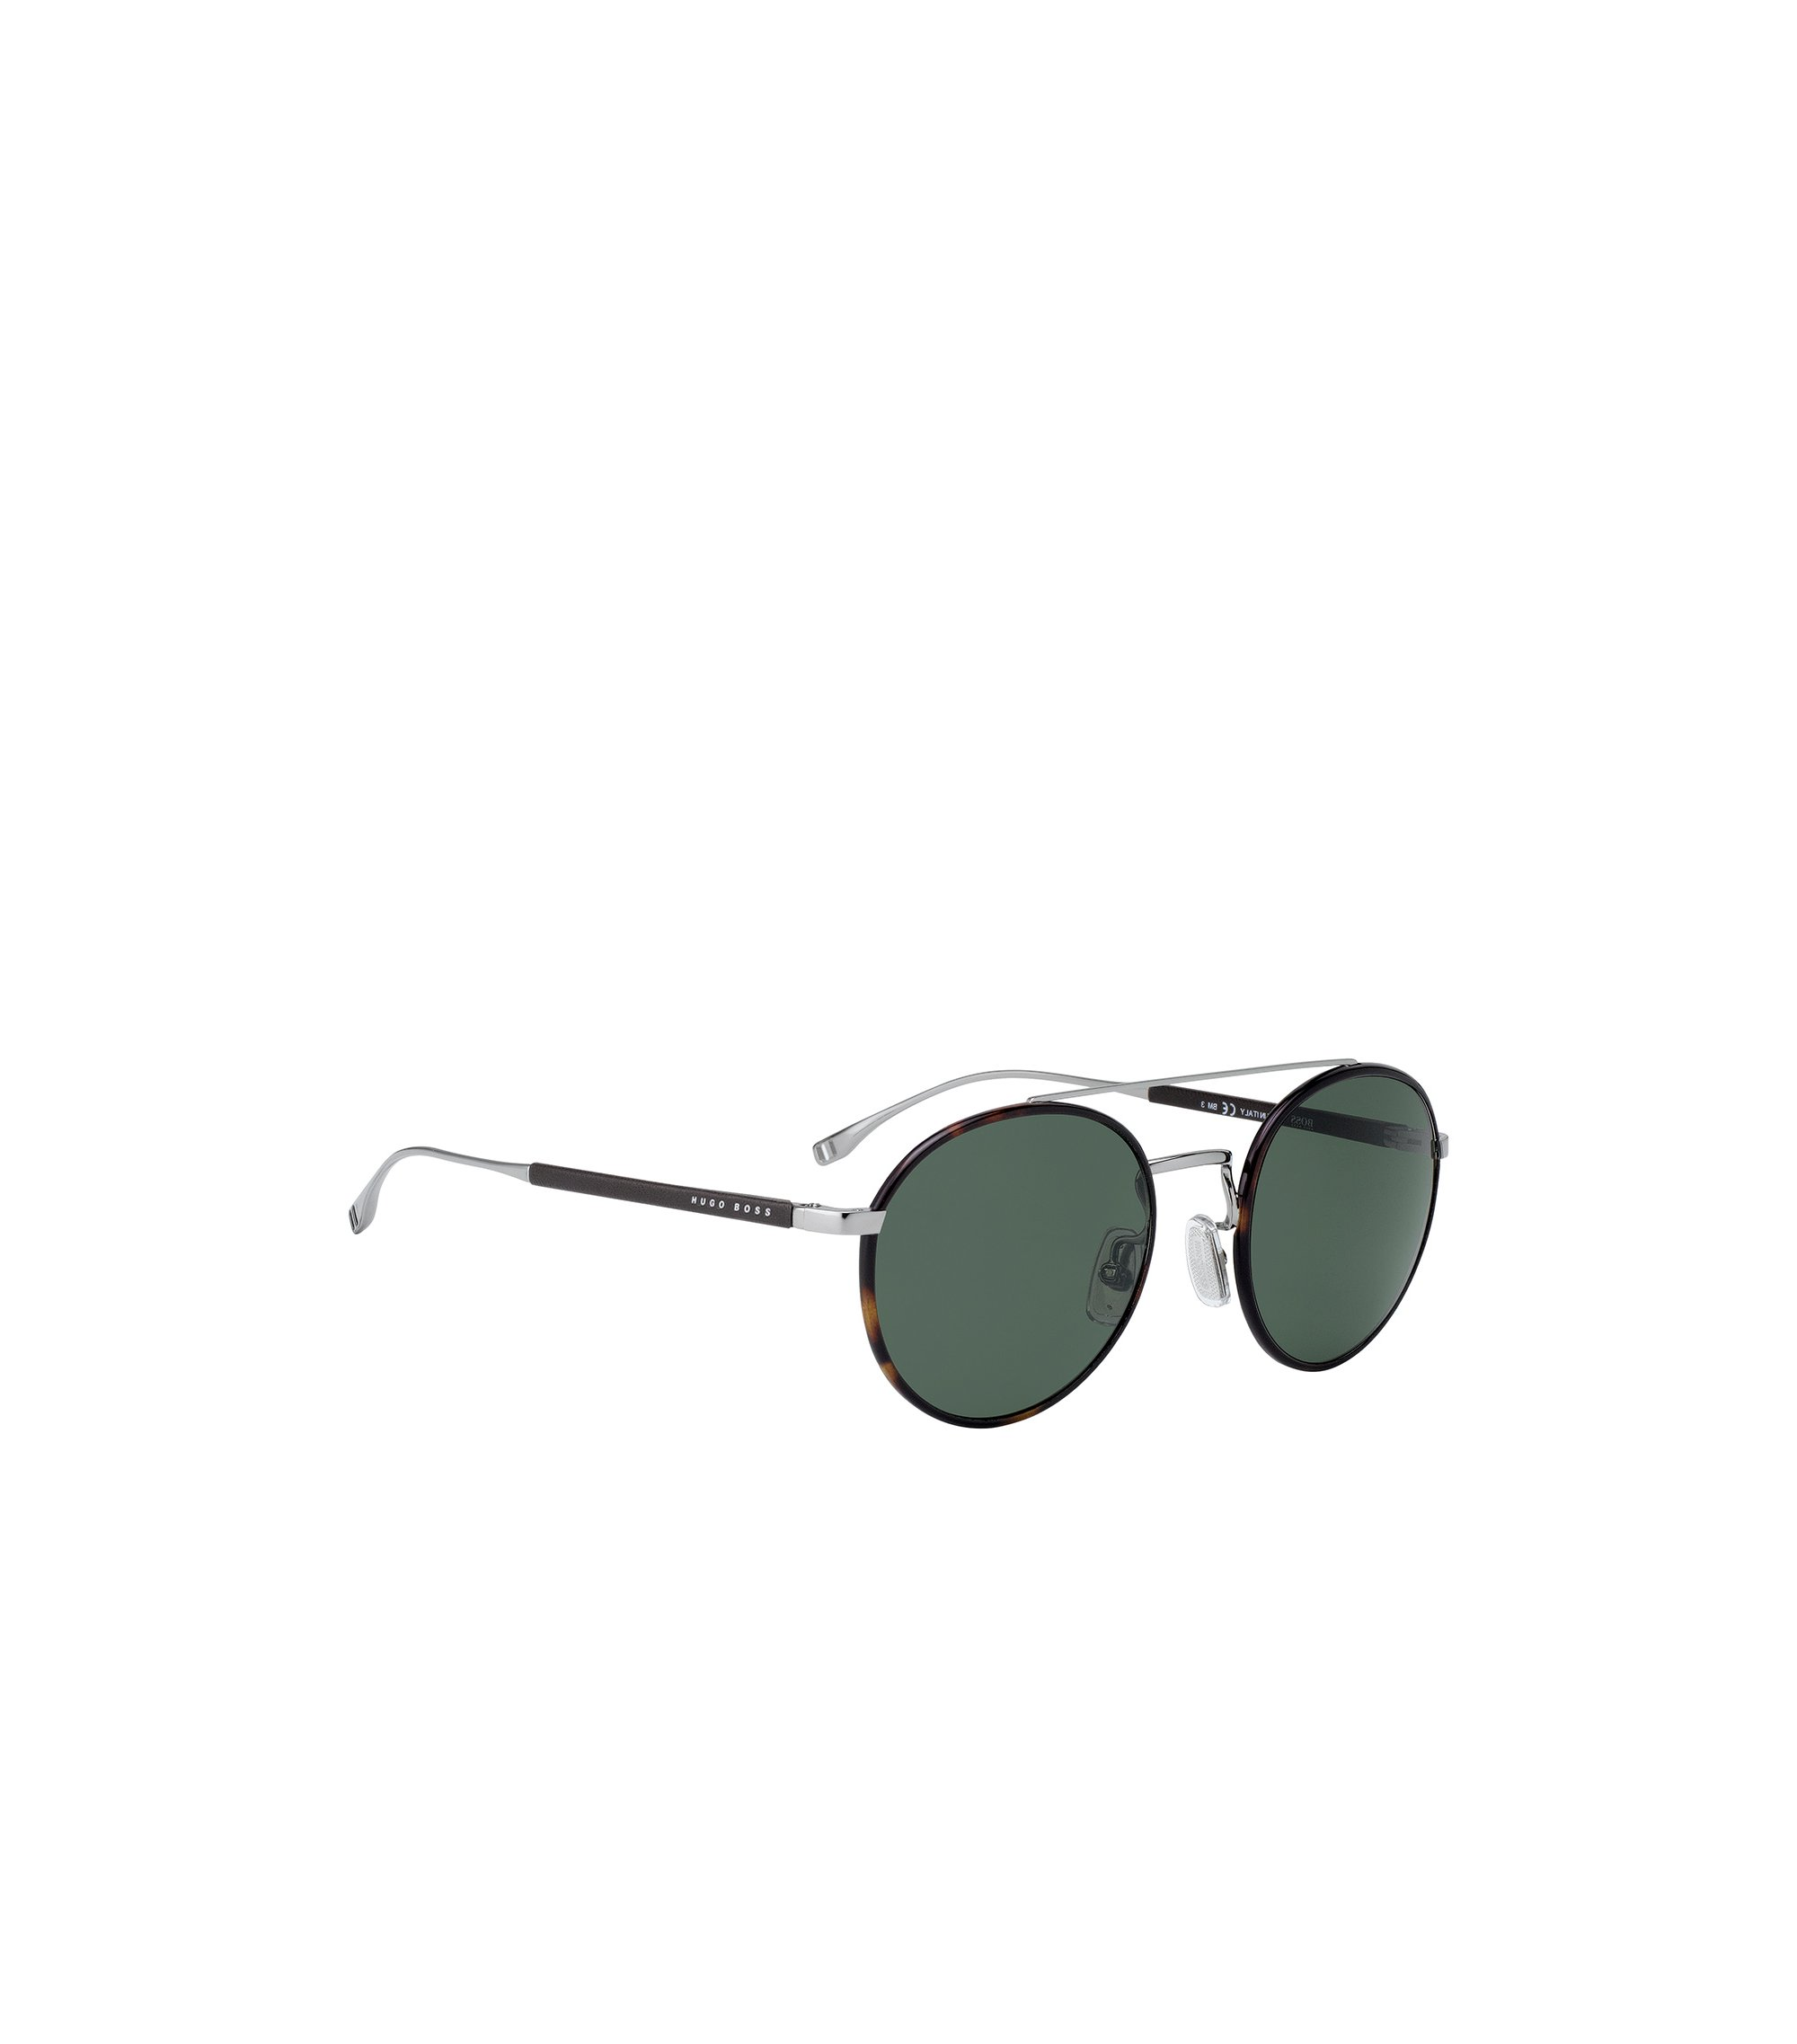 Green Lens Round Leather Wrapped Sunglasses | BOSS 0886S, Assorted-Pre-Pack